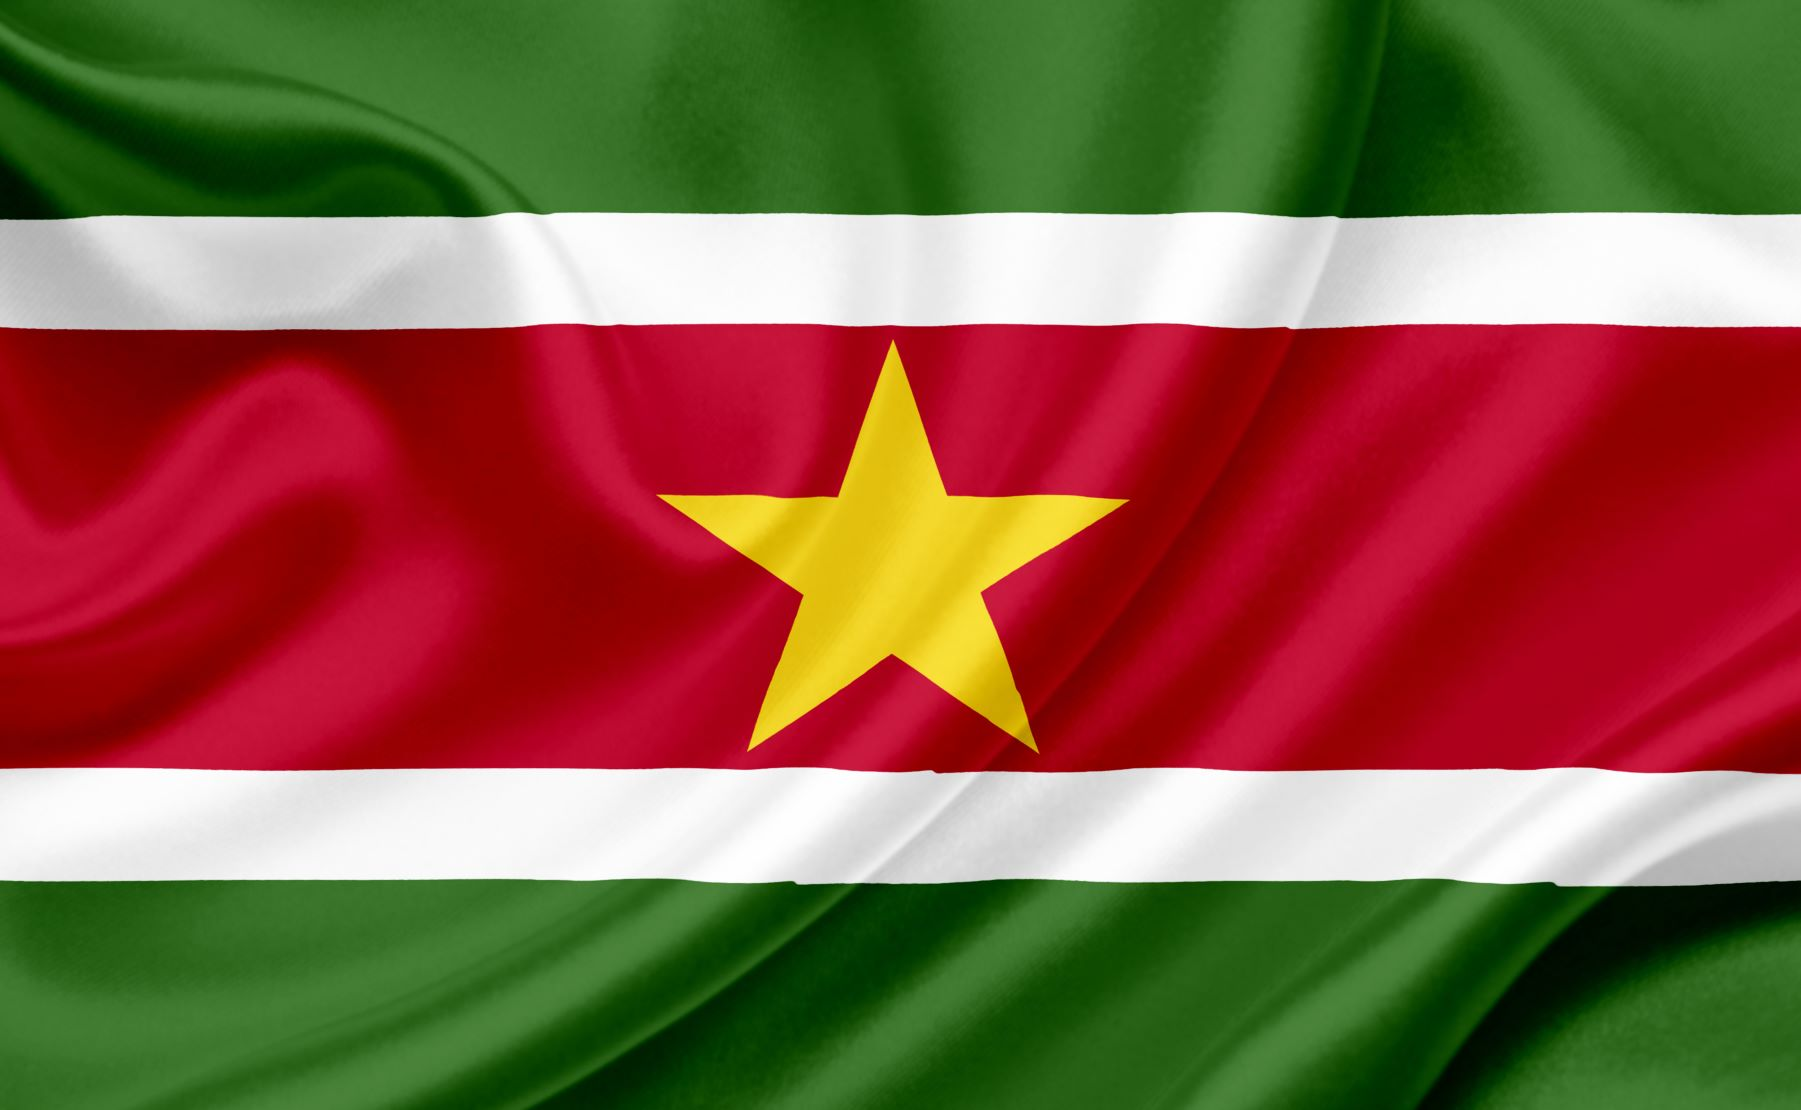 Suriname extends and amends consent solicitation